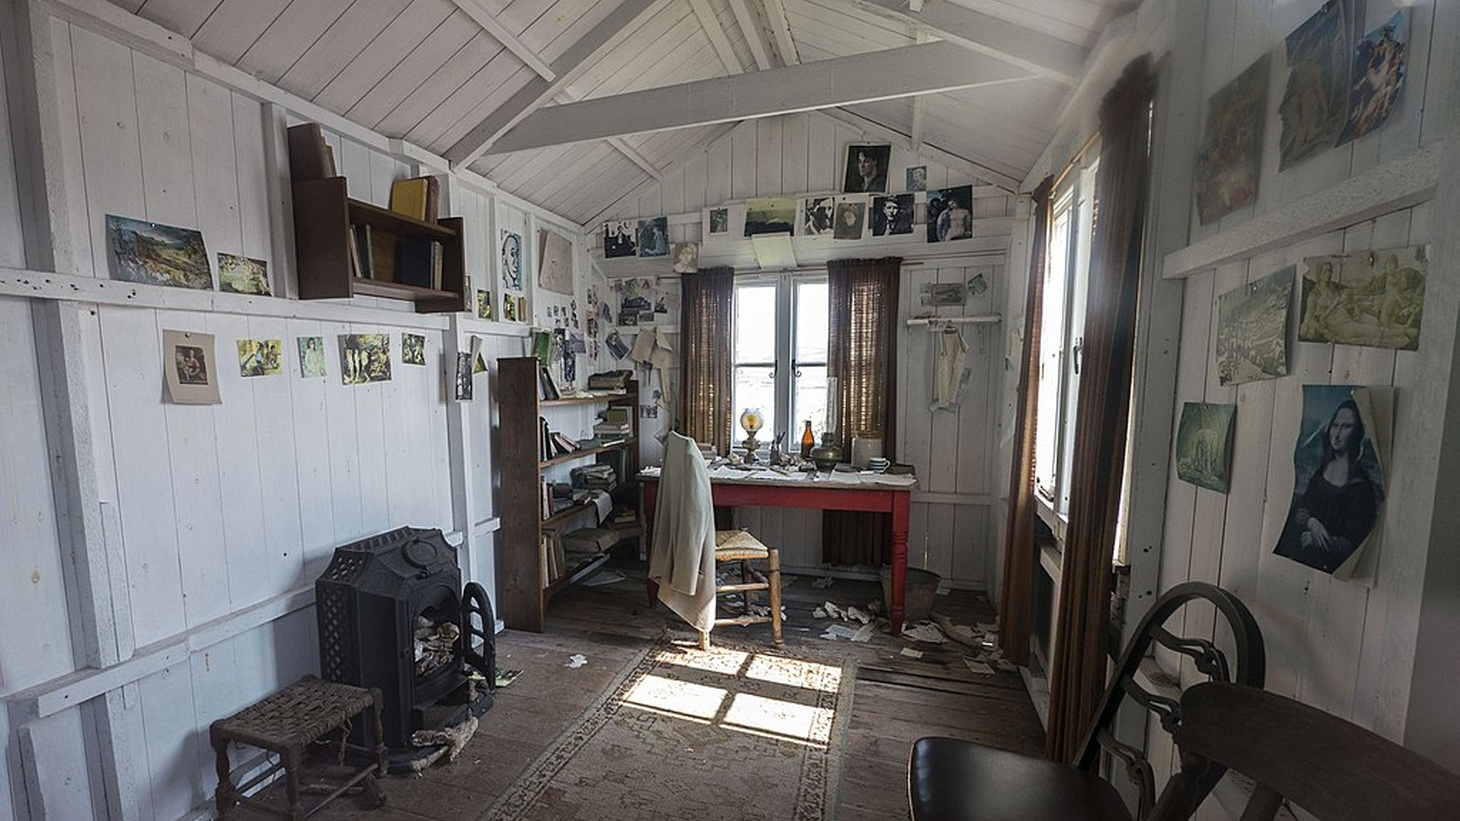 Some of our greatest literary geniuses wrote in what might seem to be, less than ideal work spaces. Dylan Thomas' writing shed in Laugharne.